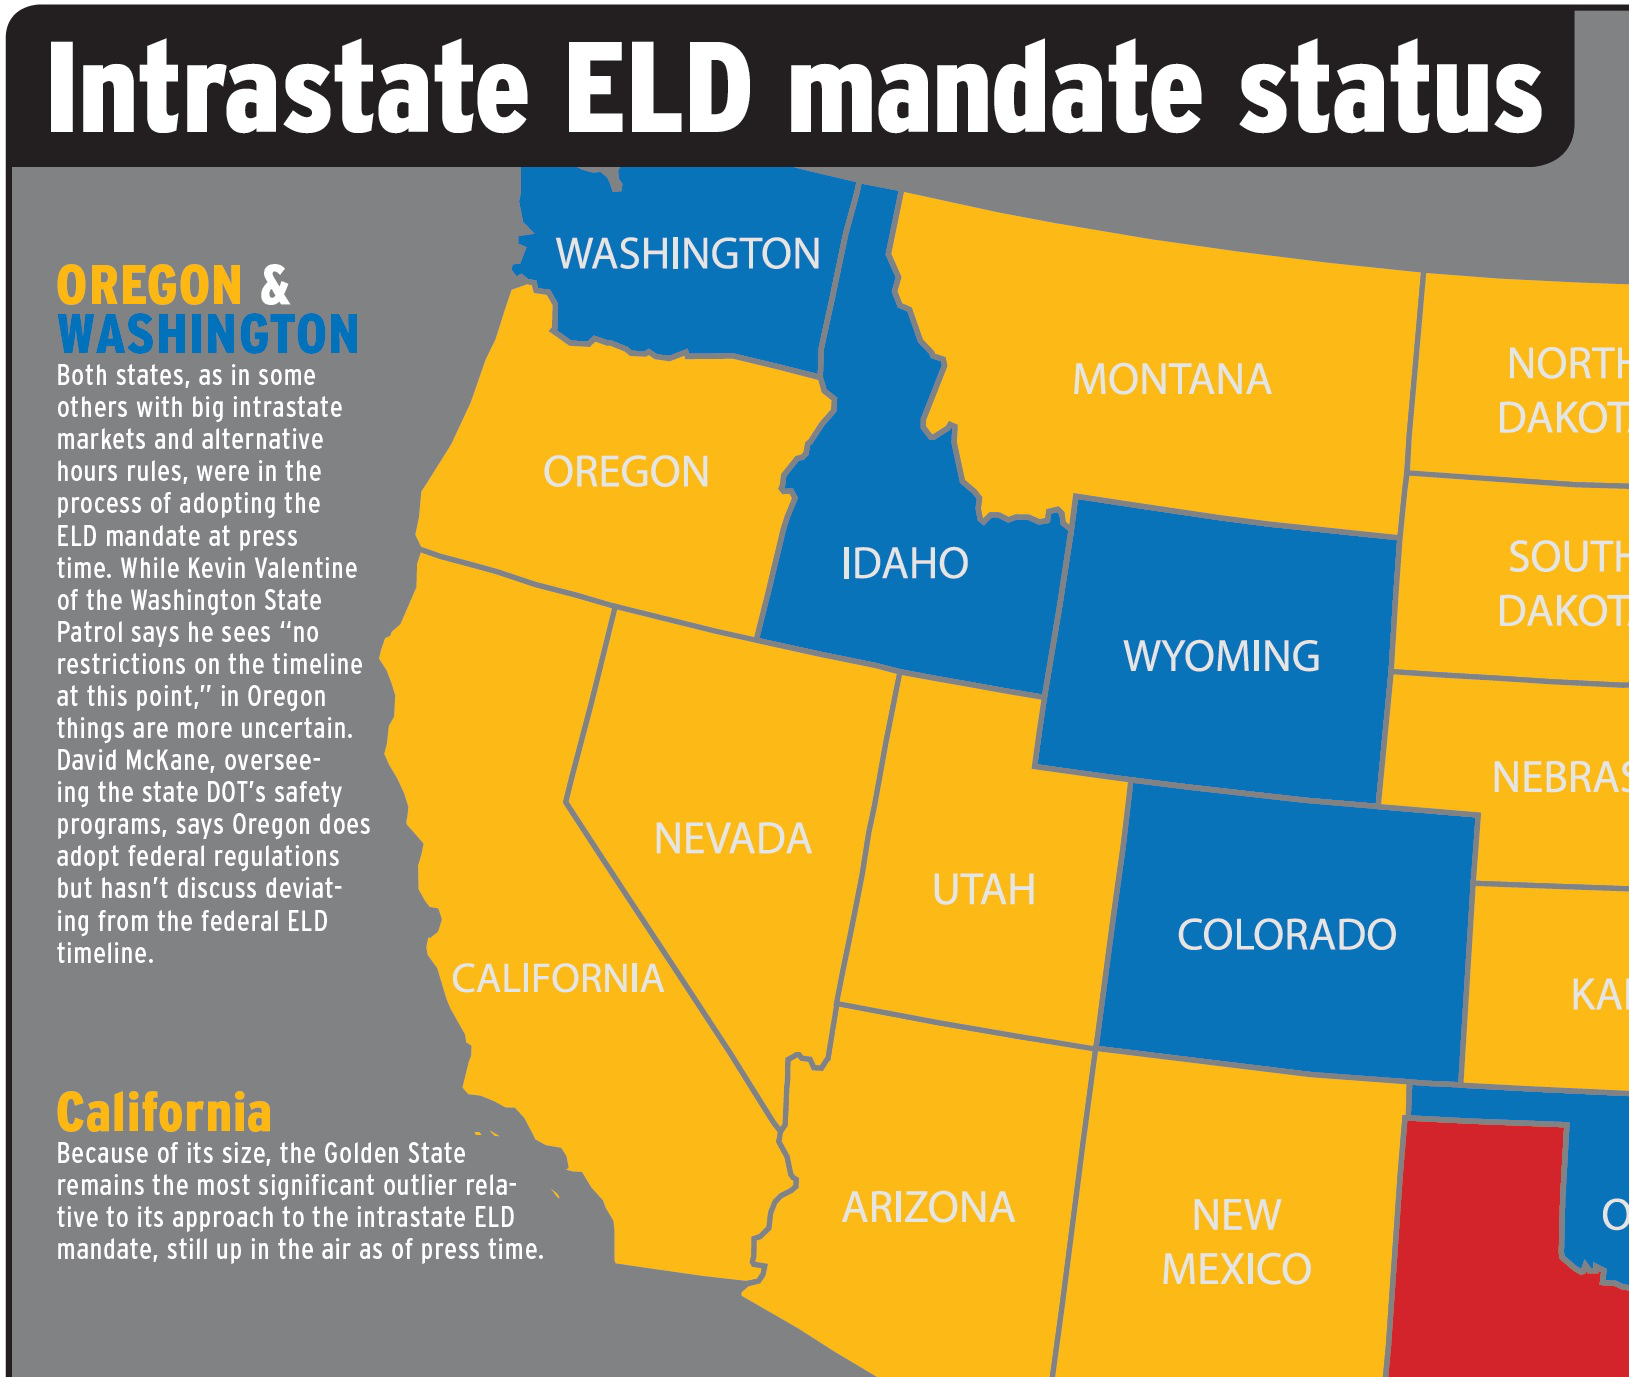 Intrastate ELD mandates: California enforcement deadline likely to